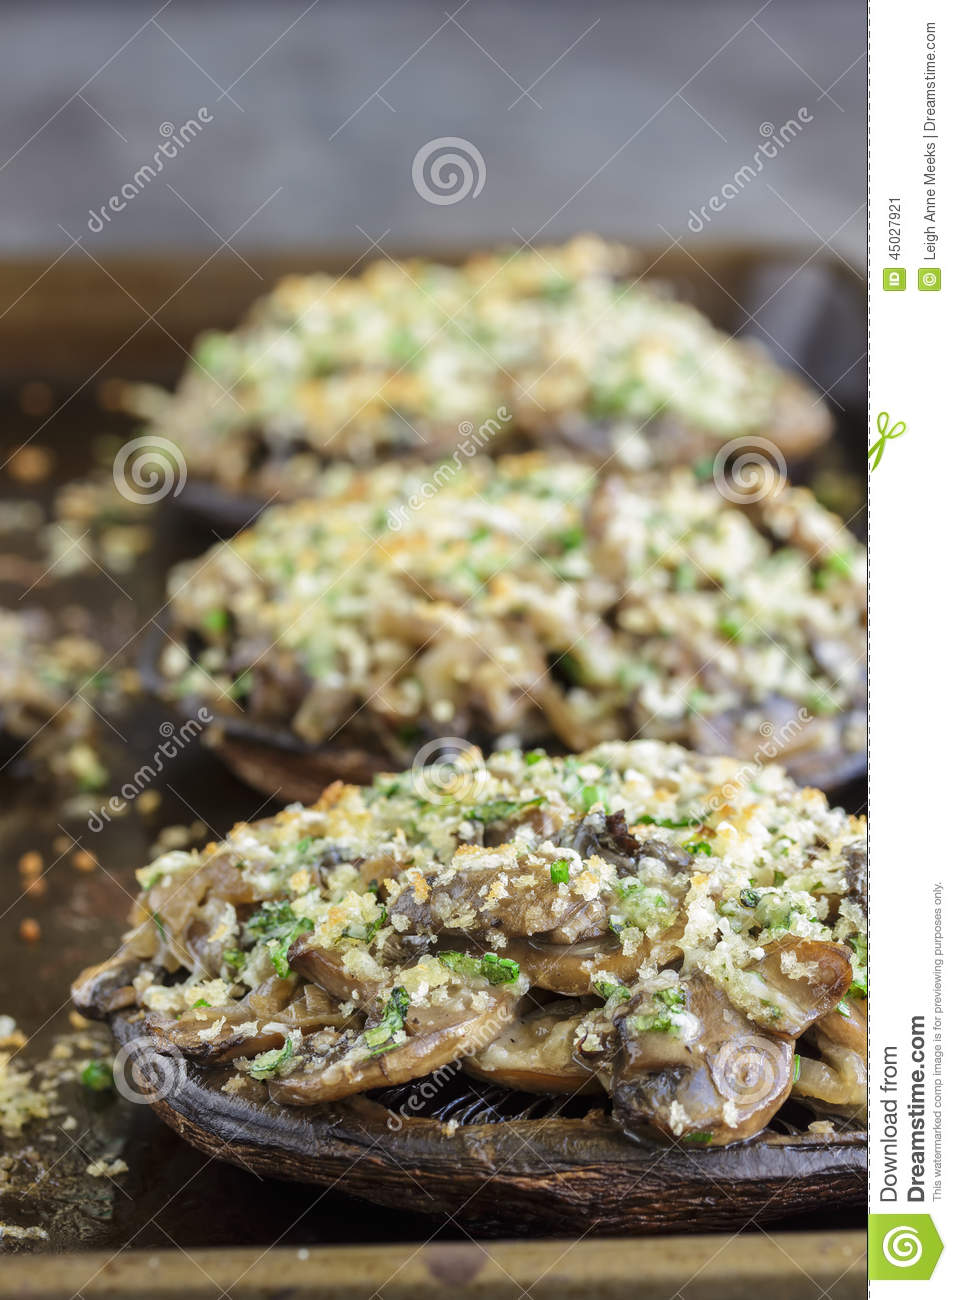 Portobello Gratin Stock Photo - Image: 45027921